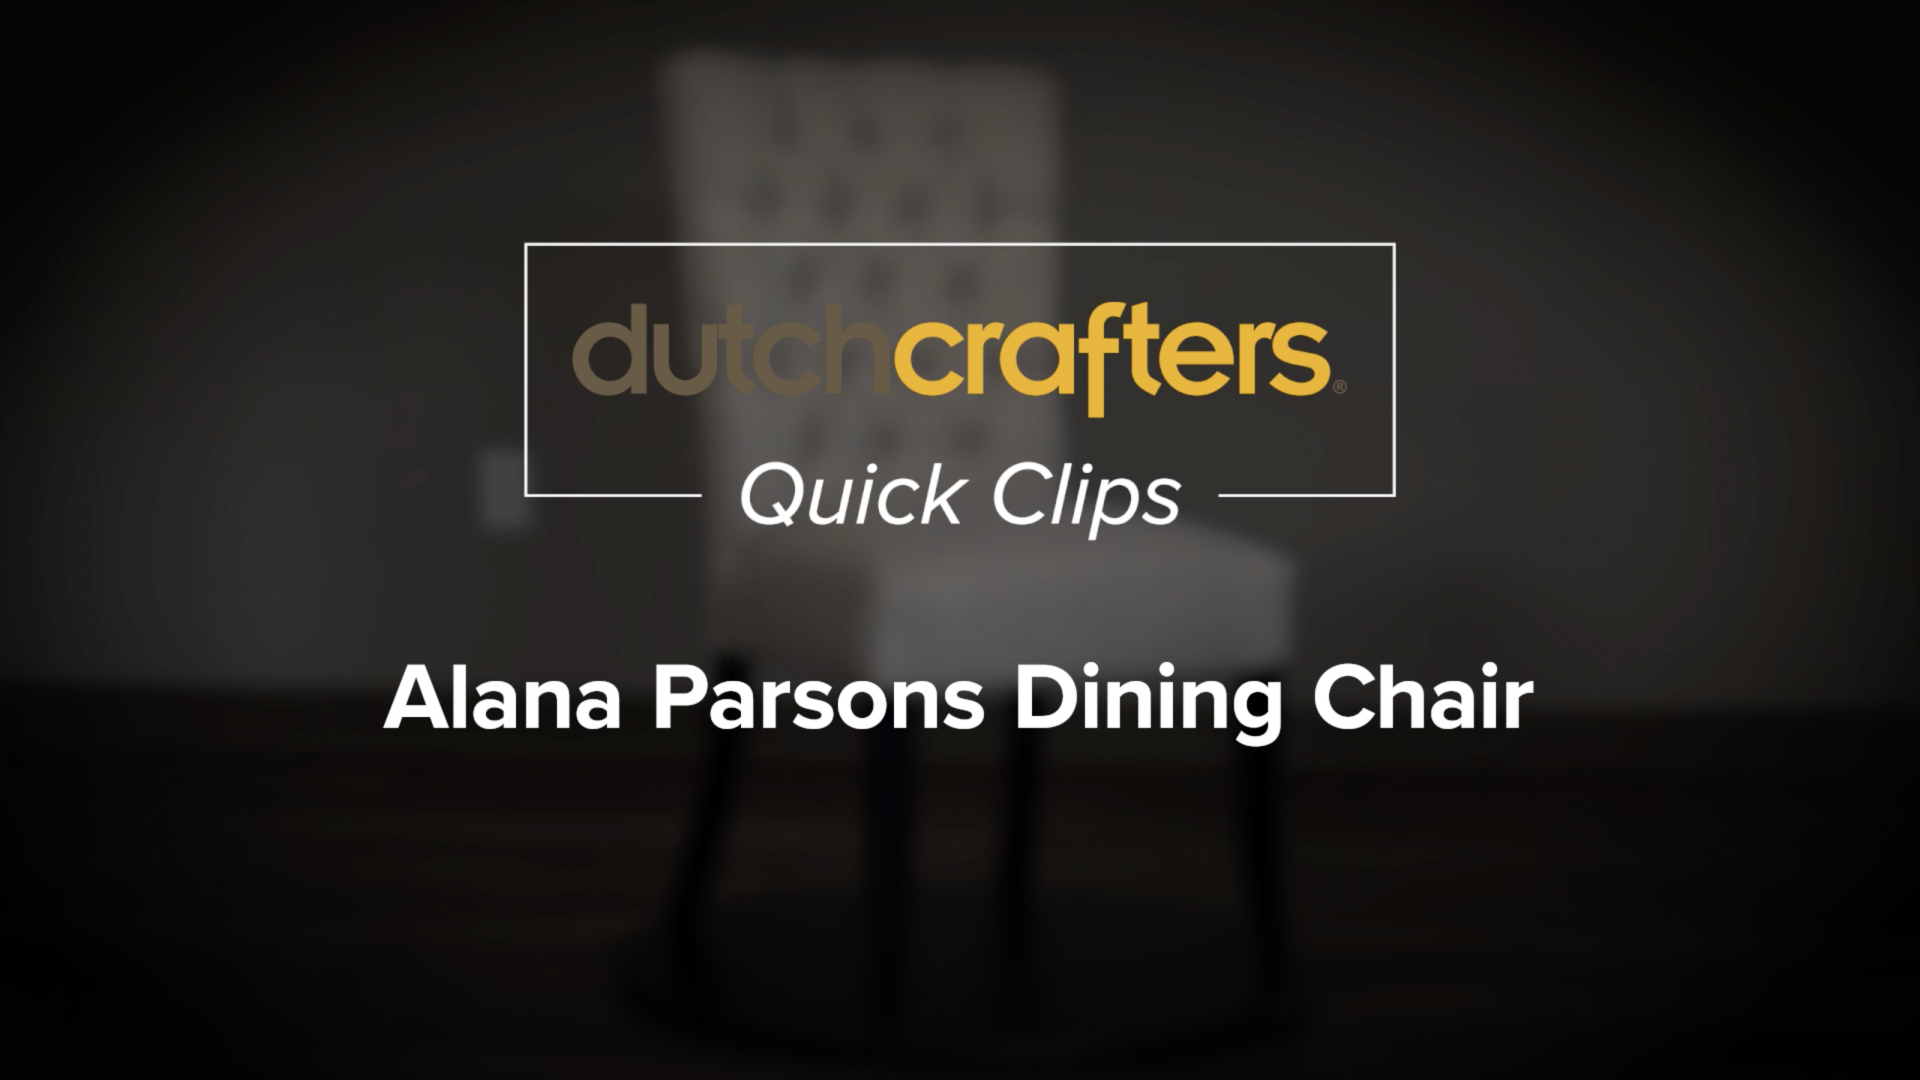 Amish Alana Parsons Dining Chair Video Title Screen